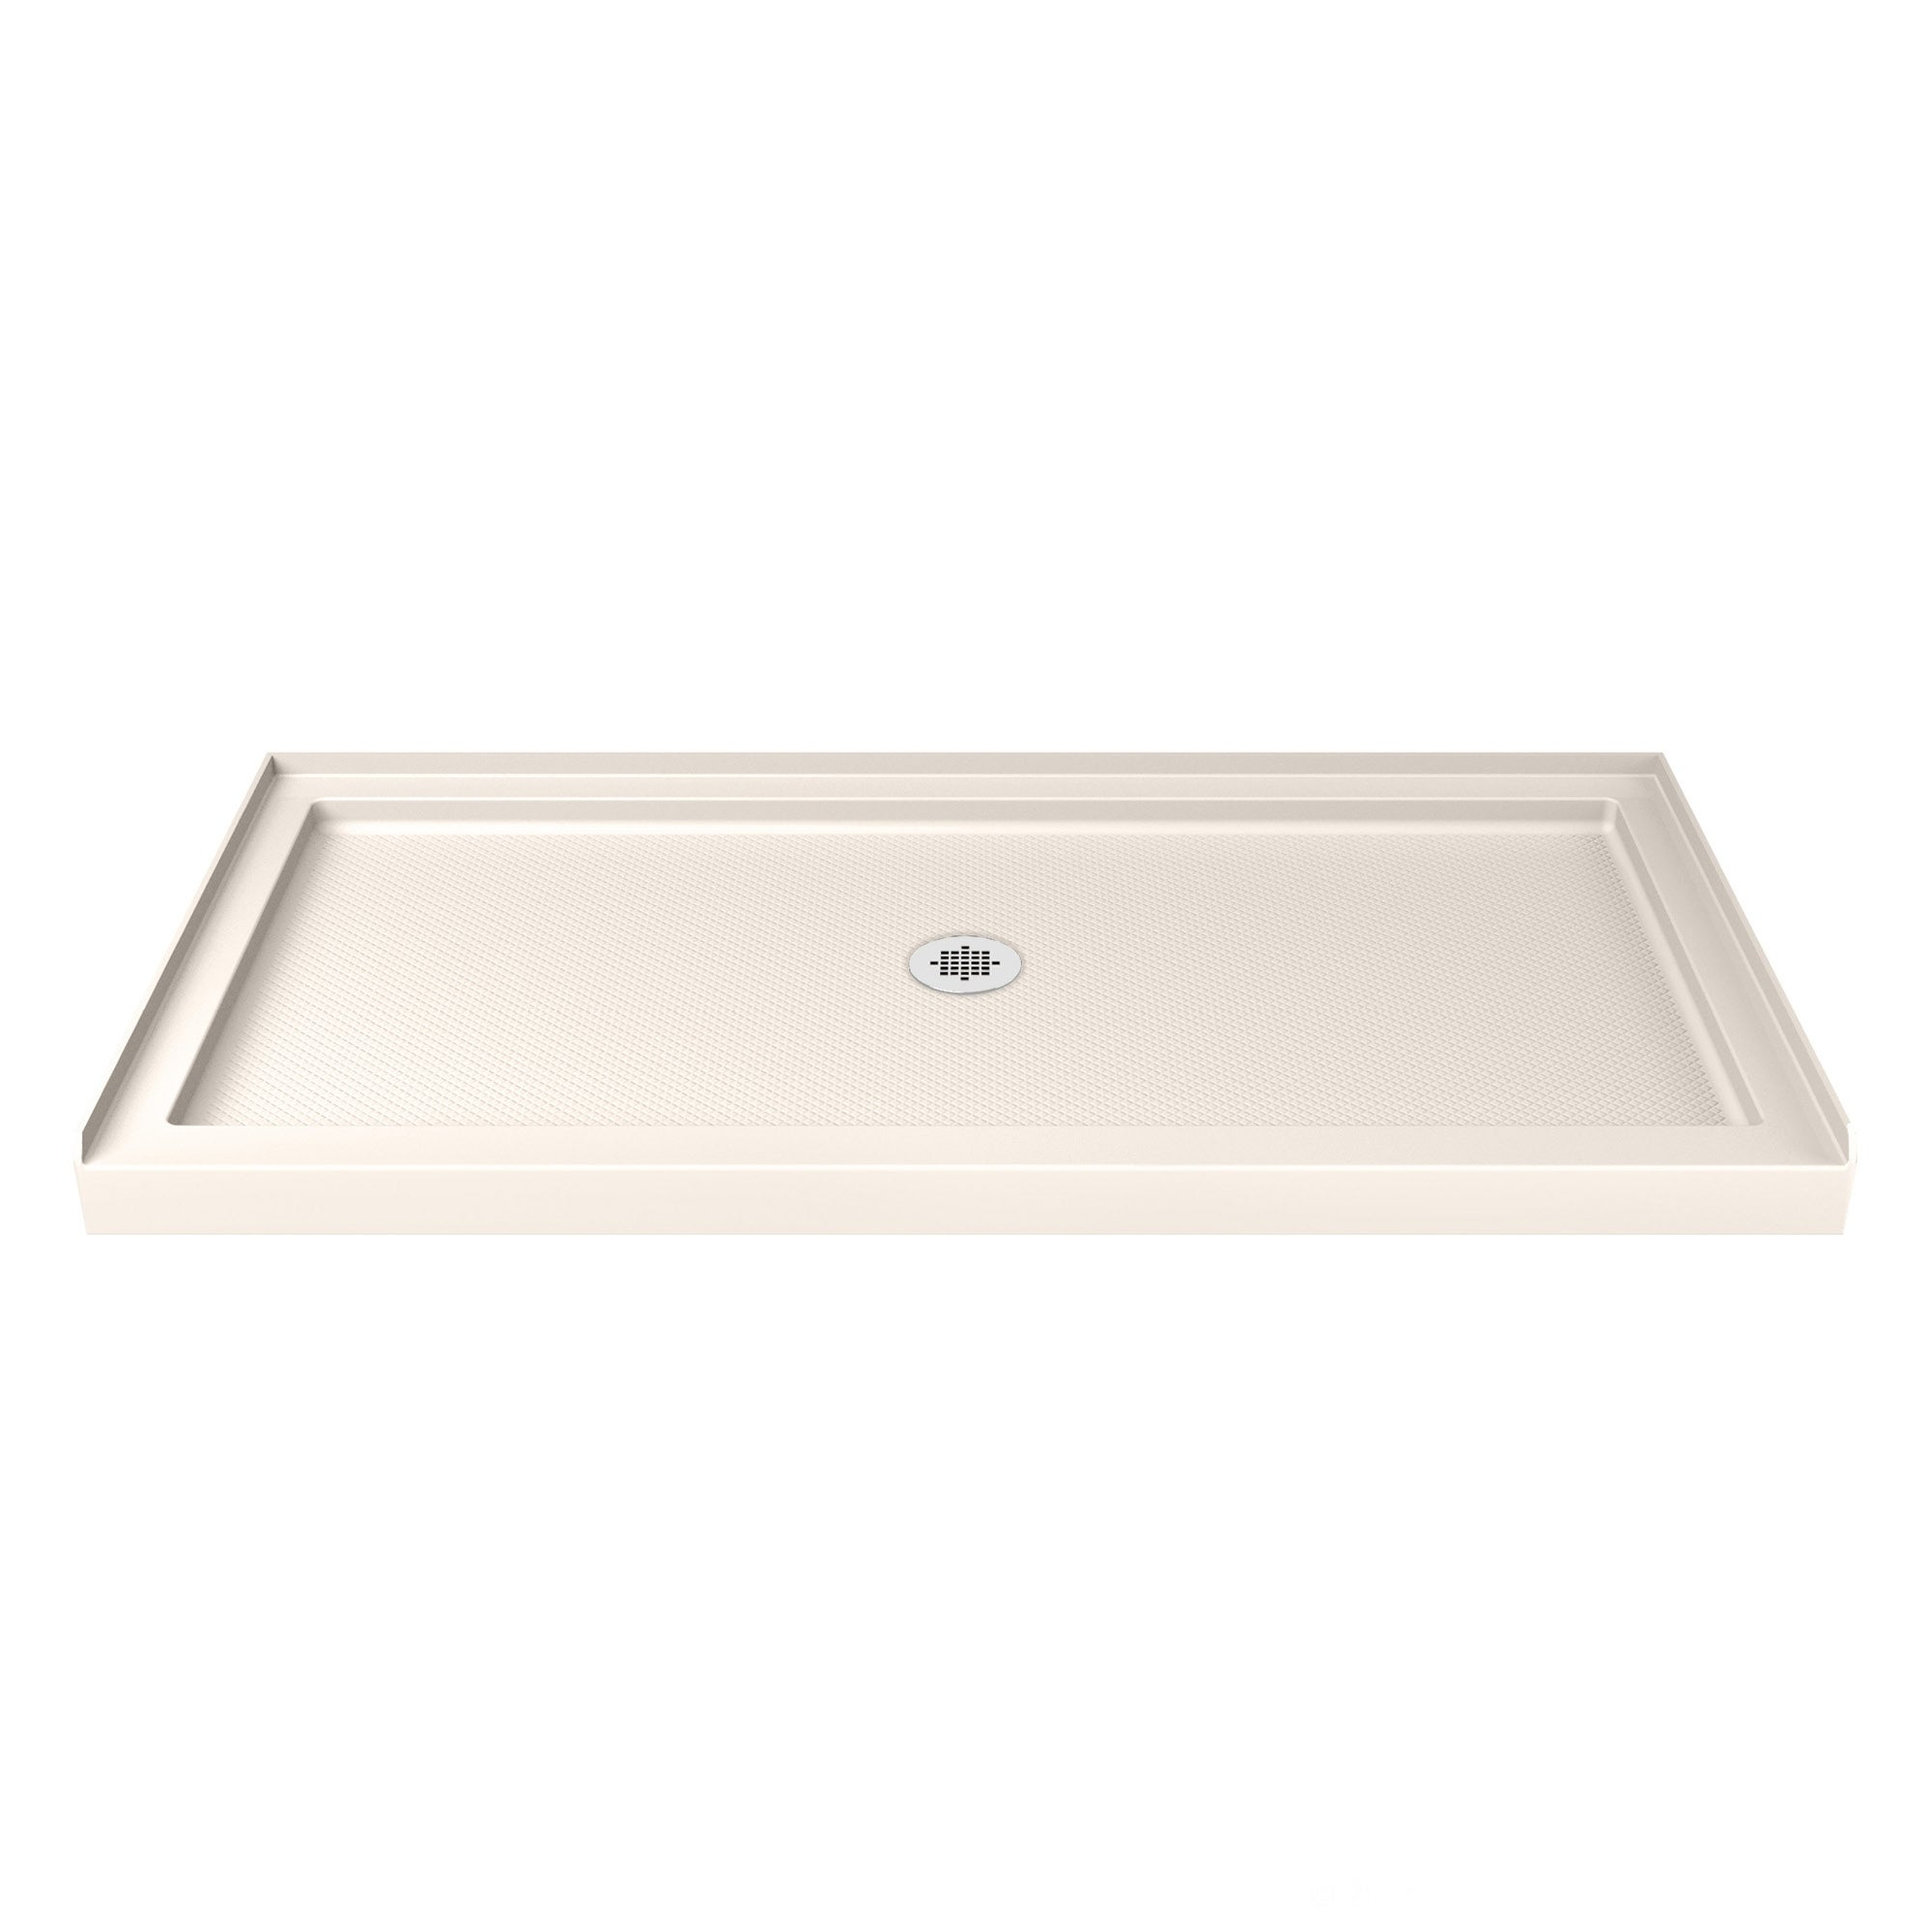 Dreamline SlimLine 30 in. by 60 in. Single Threshold Shower Base in Biscuit Color (Left Hand Drain Base), Beige